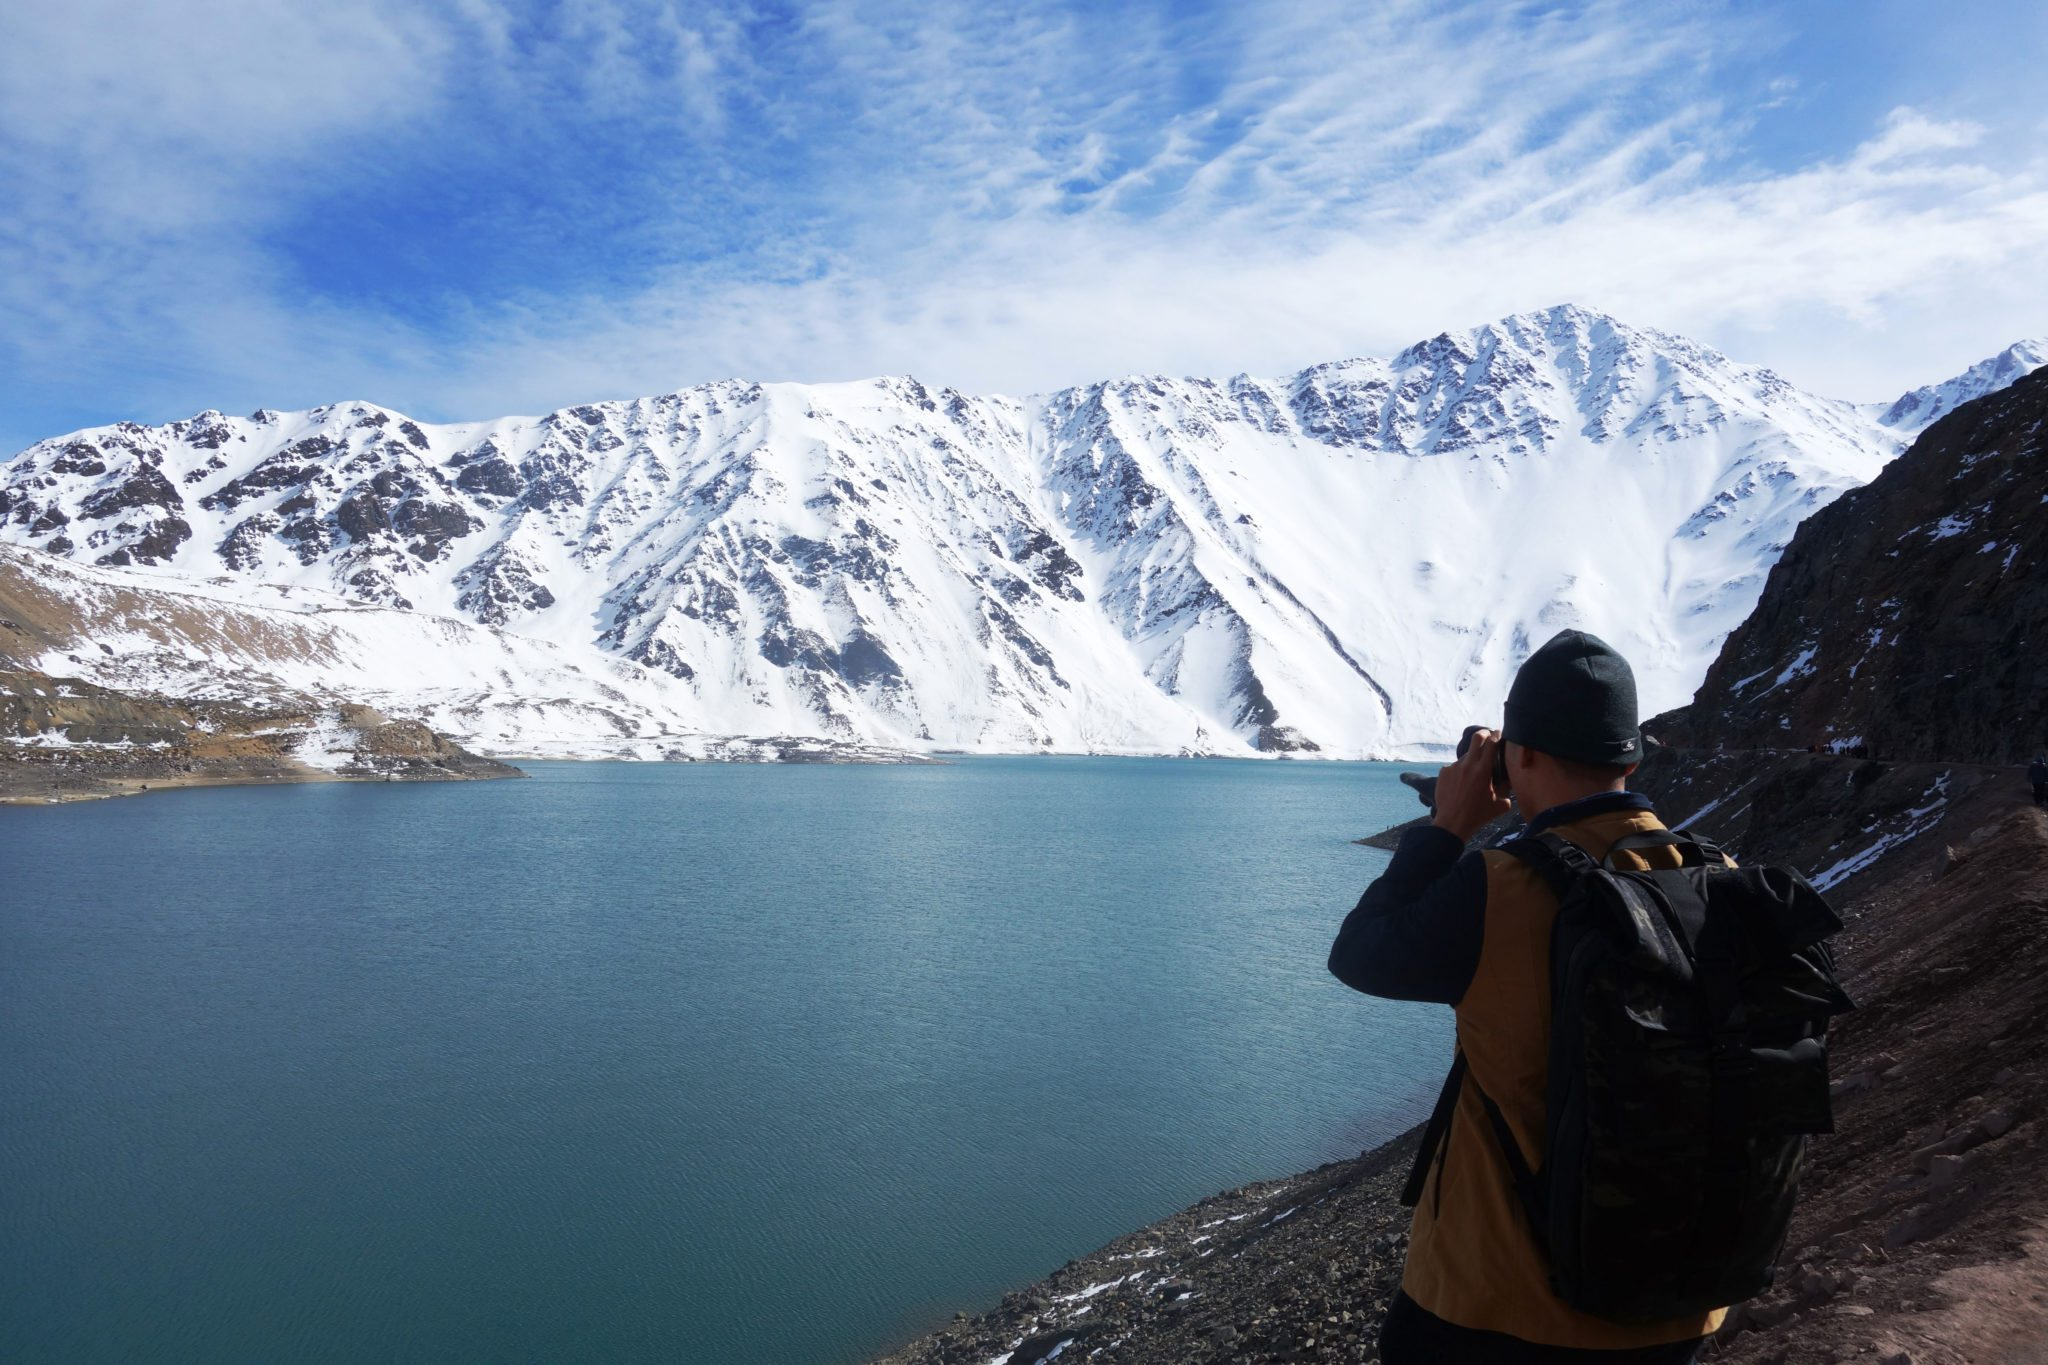 Embalse del yeso fotos 46